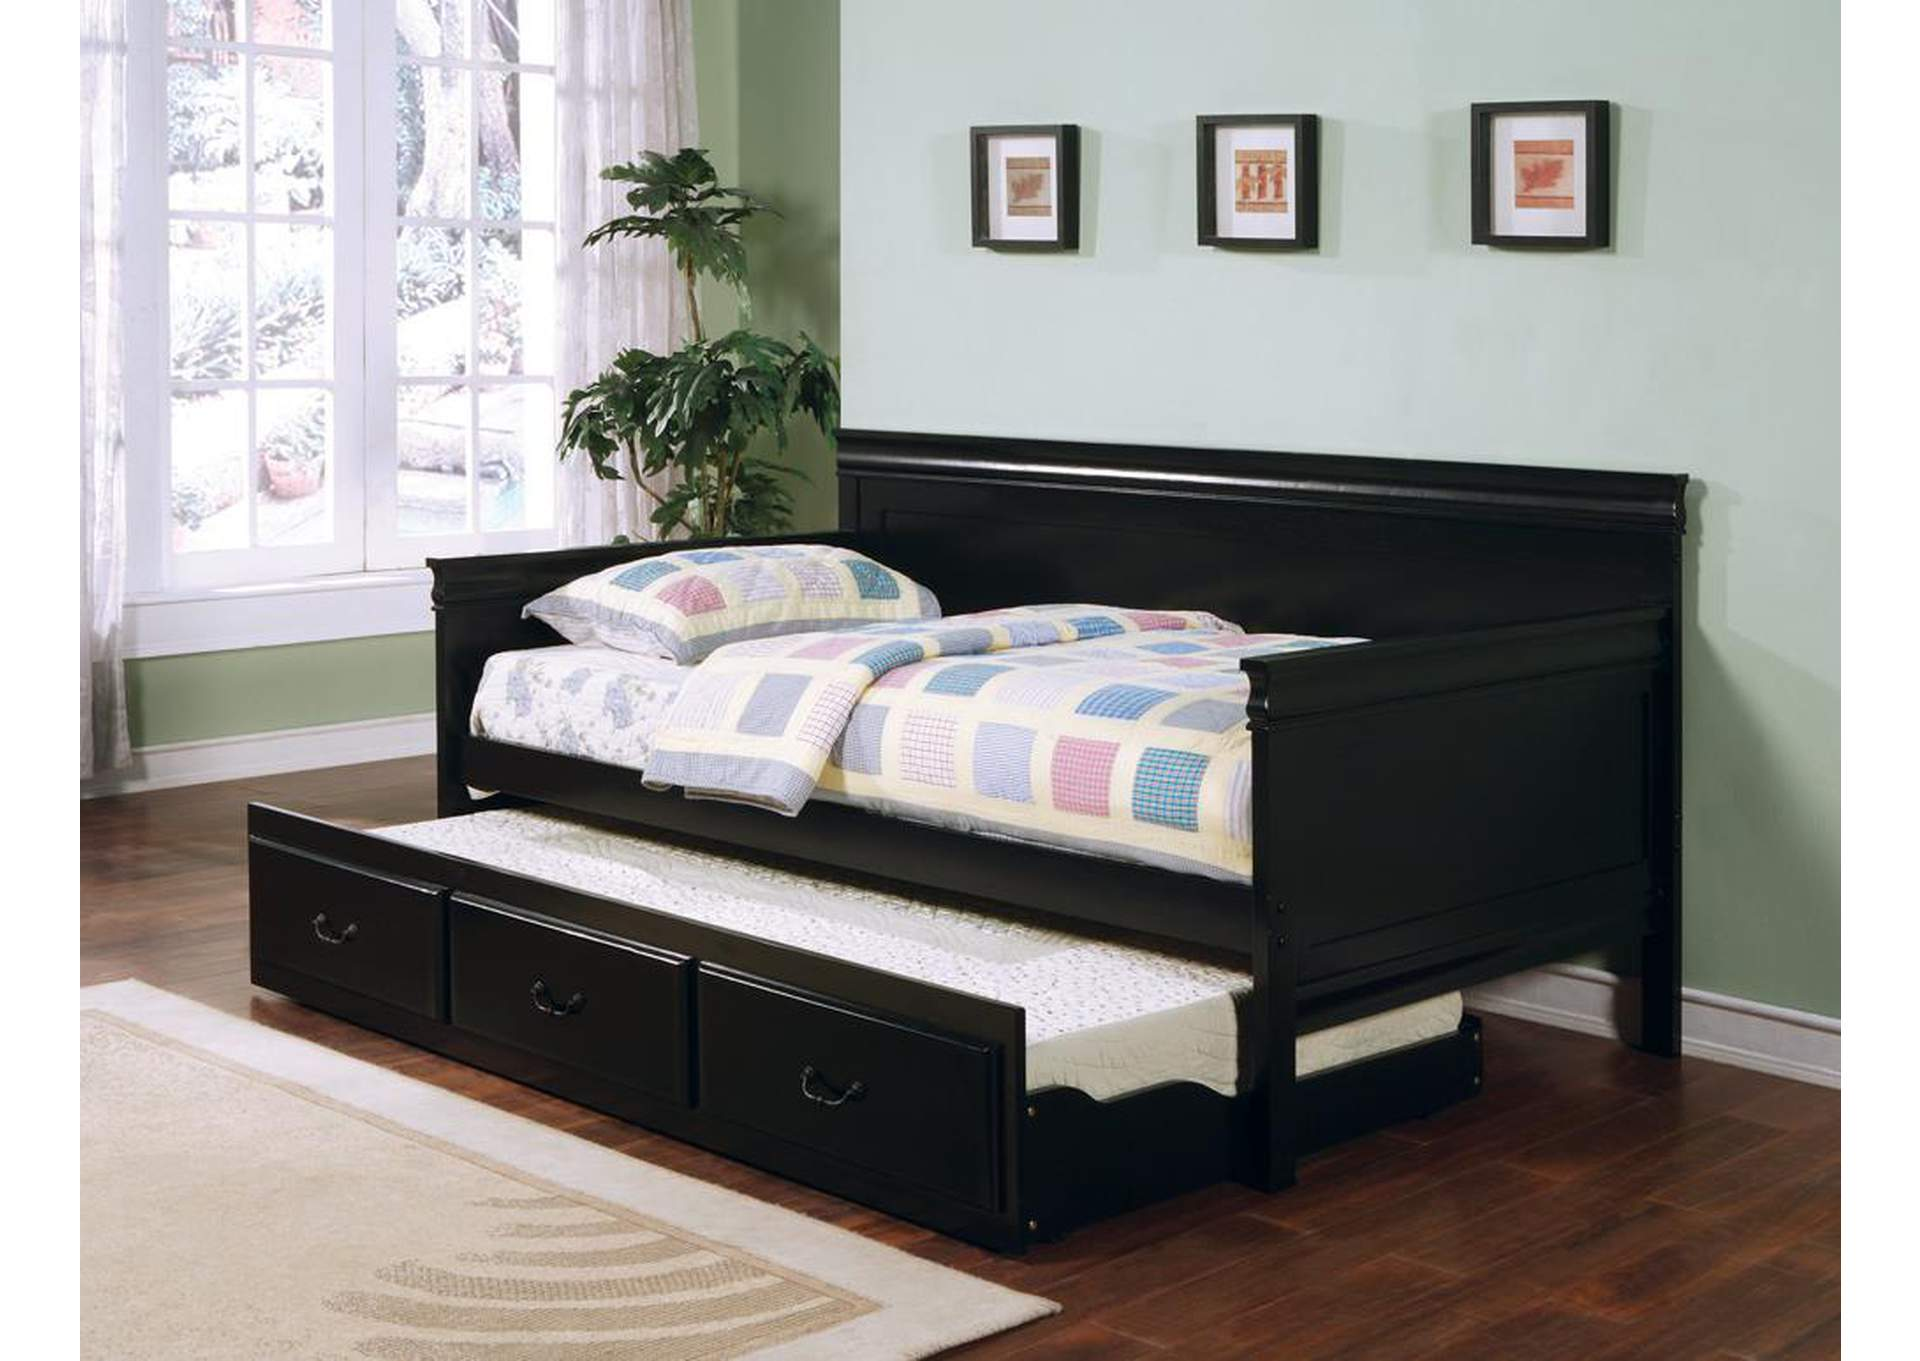 Twin Size Daybed,ABF Coaster Furniture